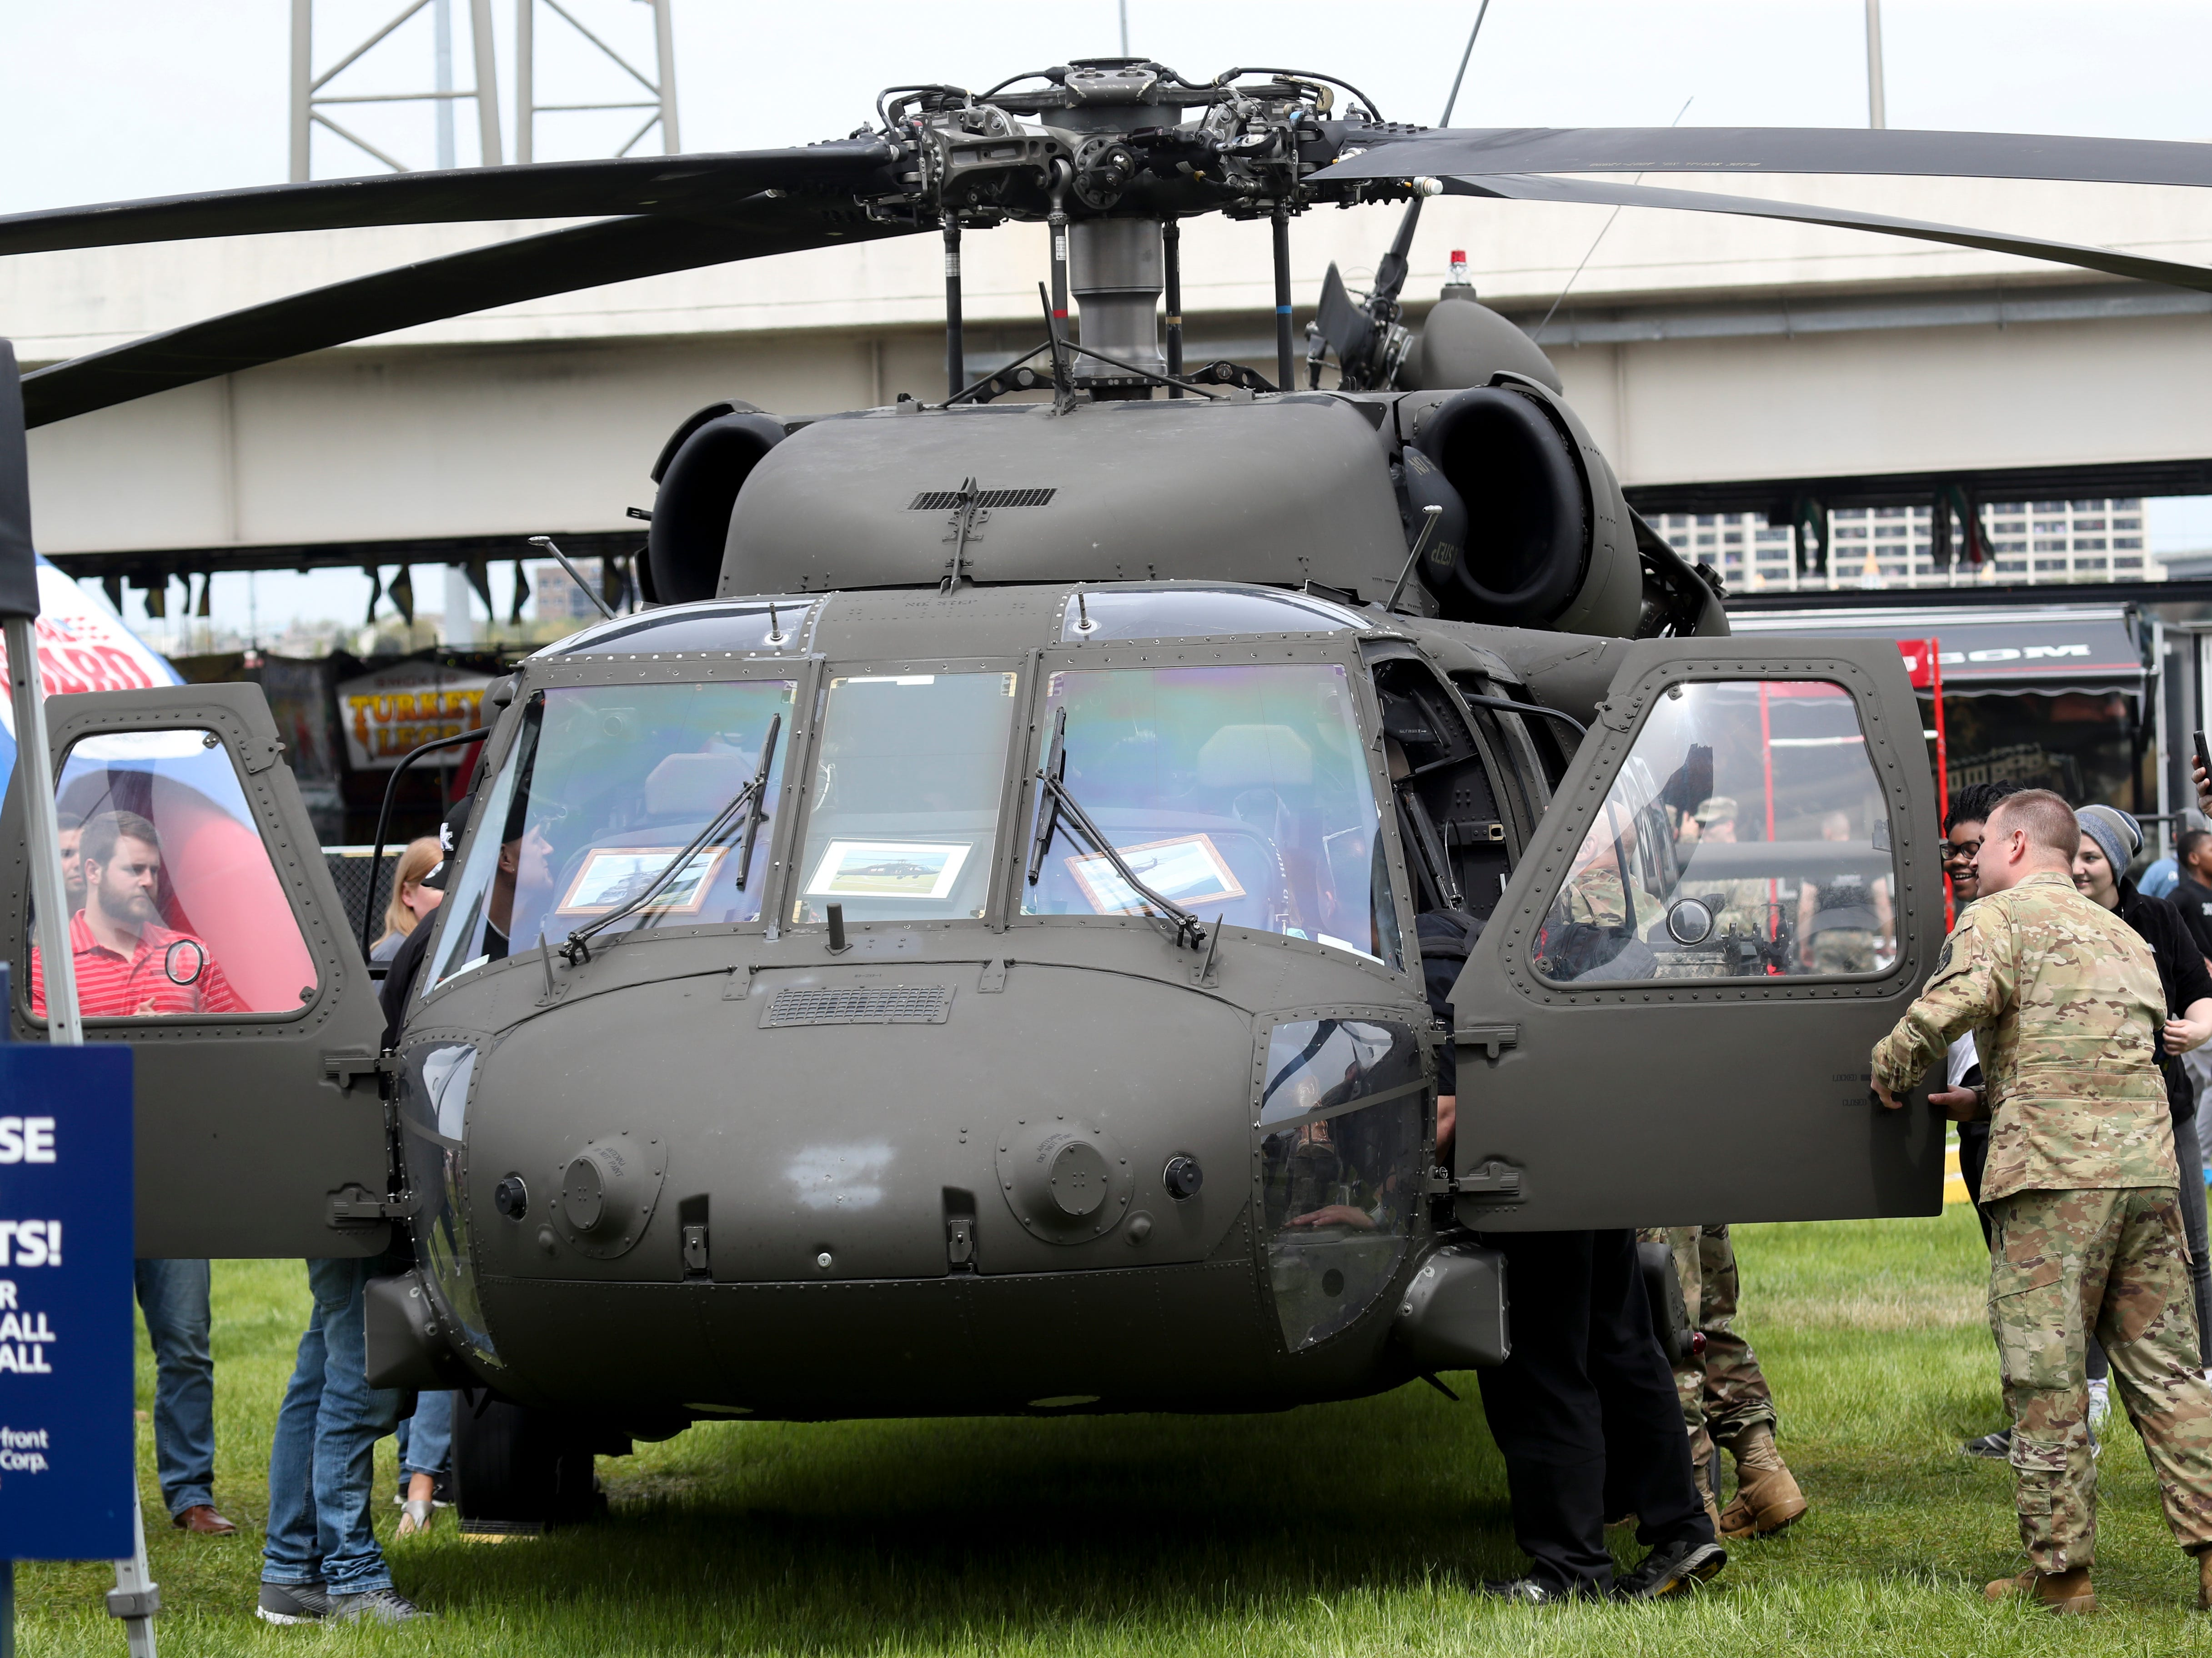 People visit the Blackhawk helicopter on display at Thunder Over Louisville on April 13.